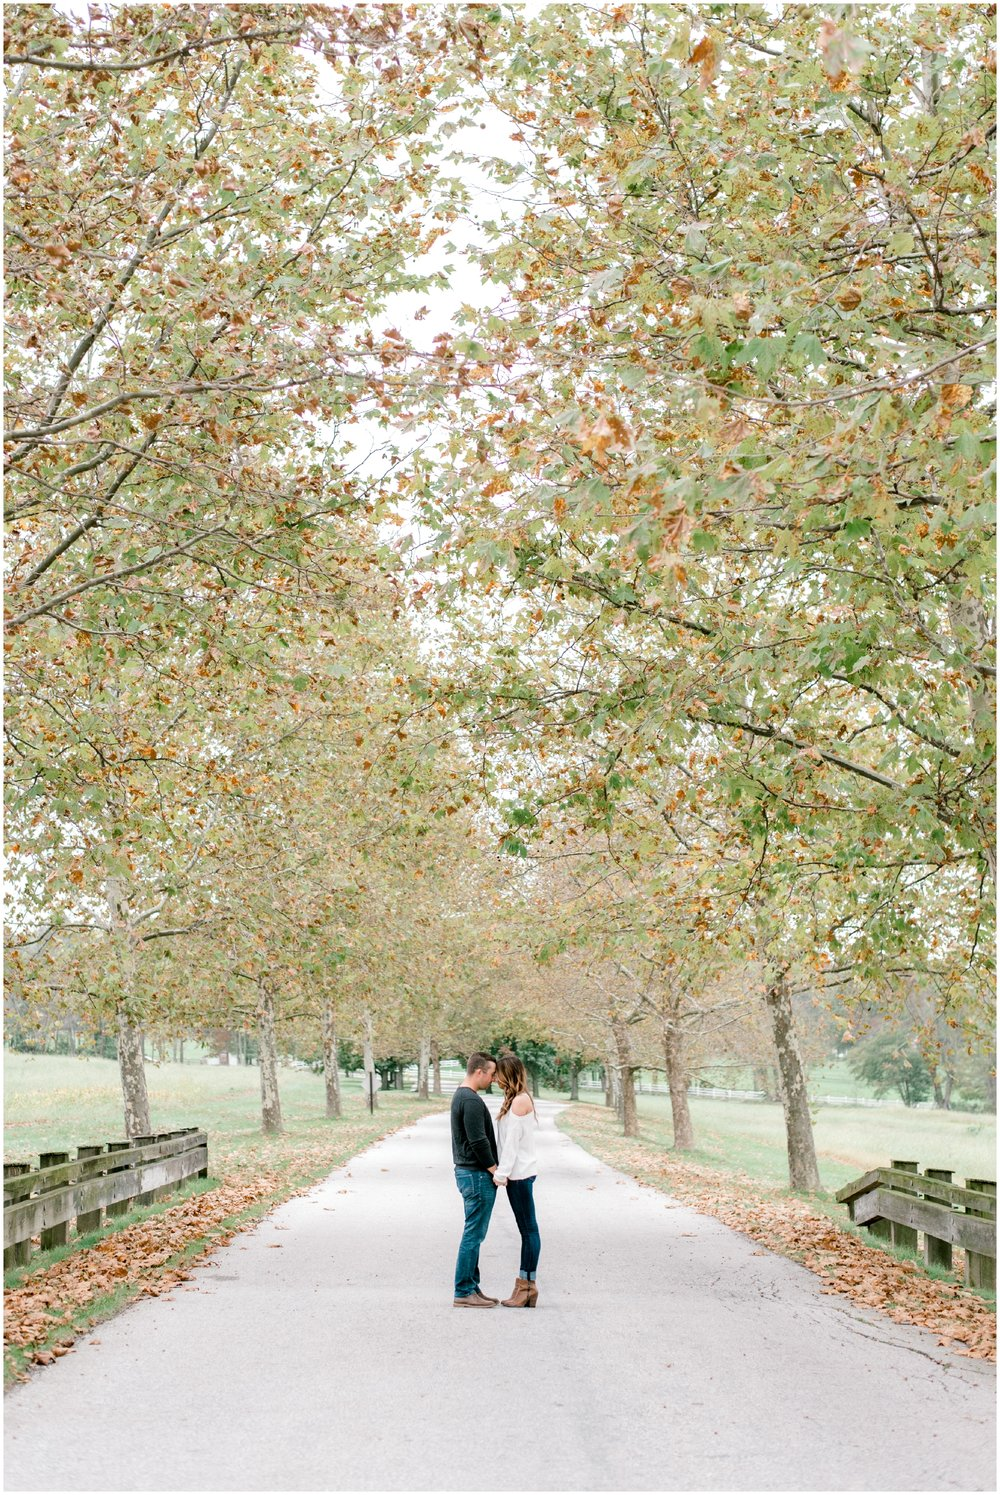 Fall Springton Manor Farm Engagement Session - Krista Brackin Photography_0028.jpg